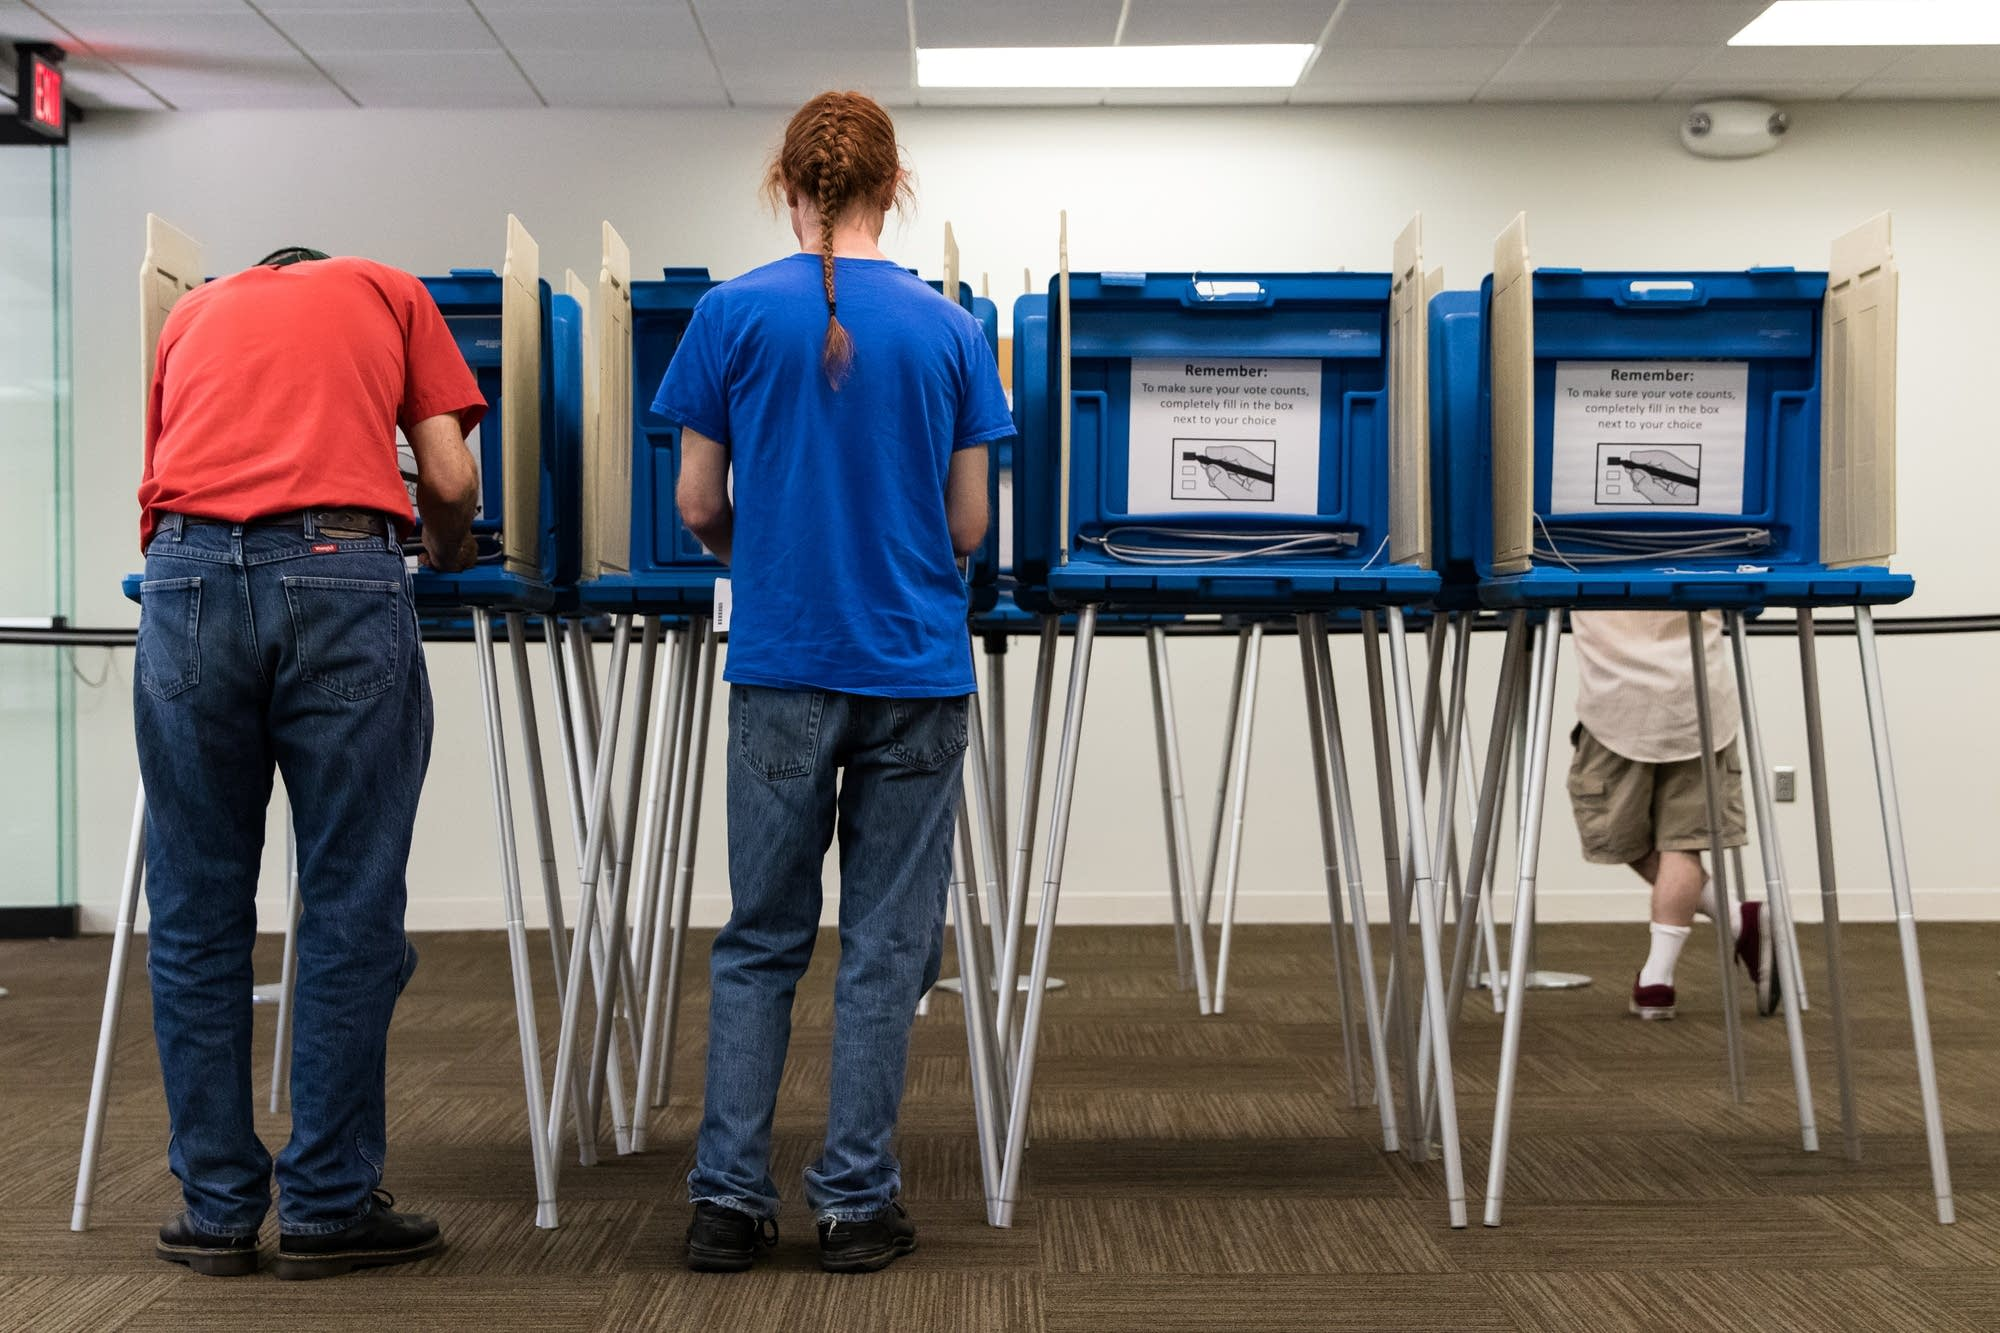 Voters fill out their primary ballots.